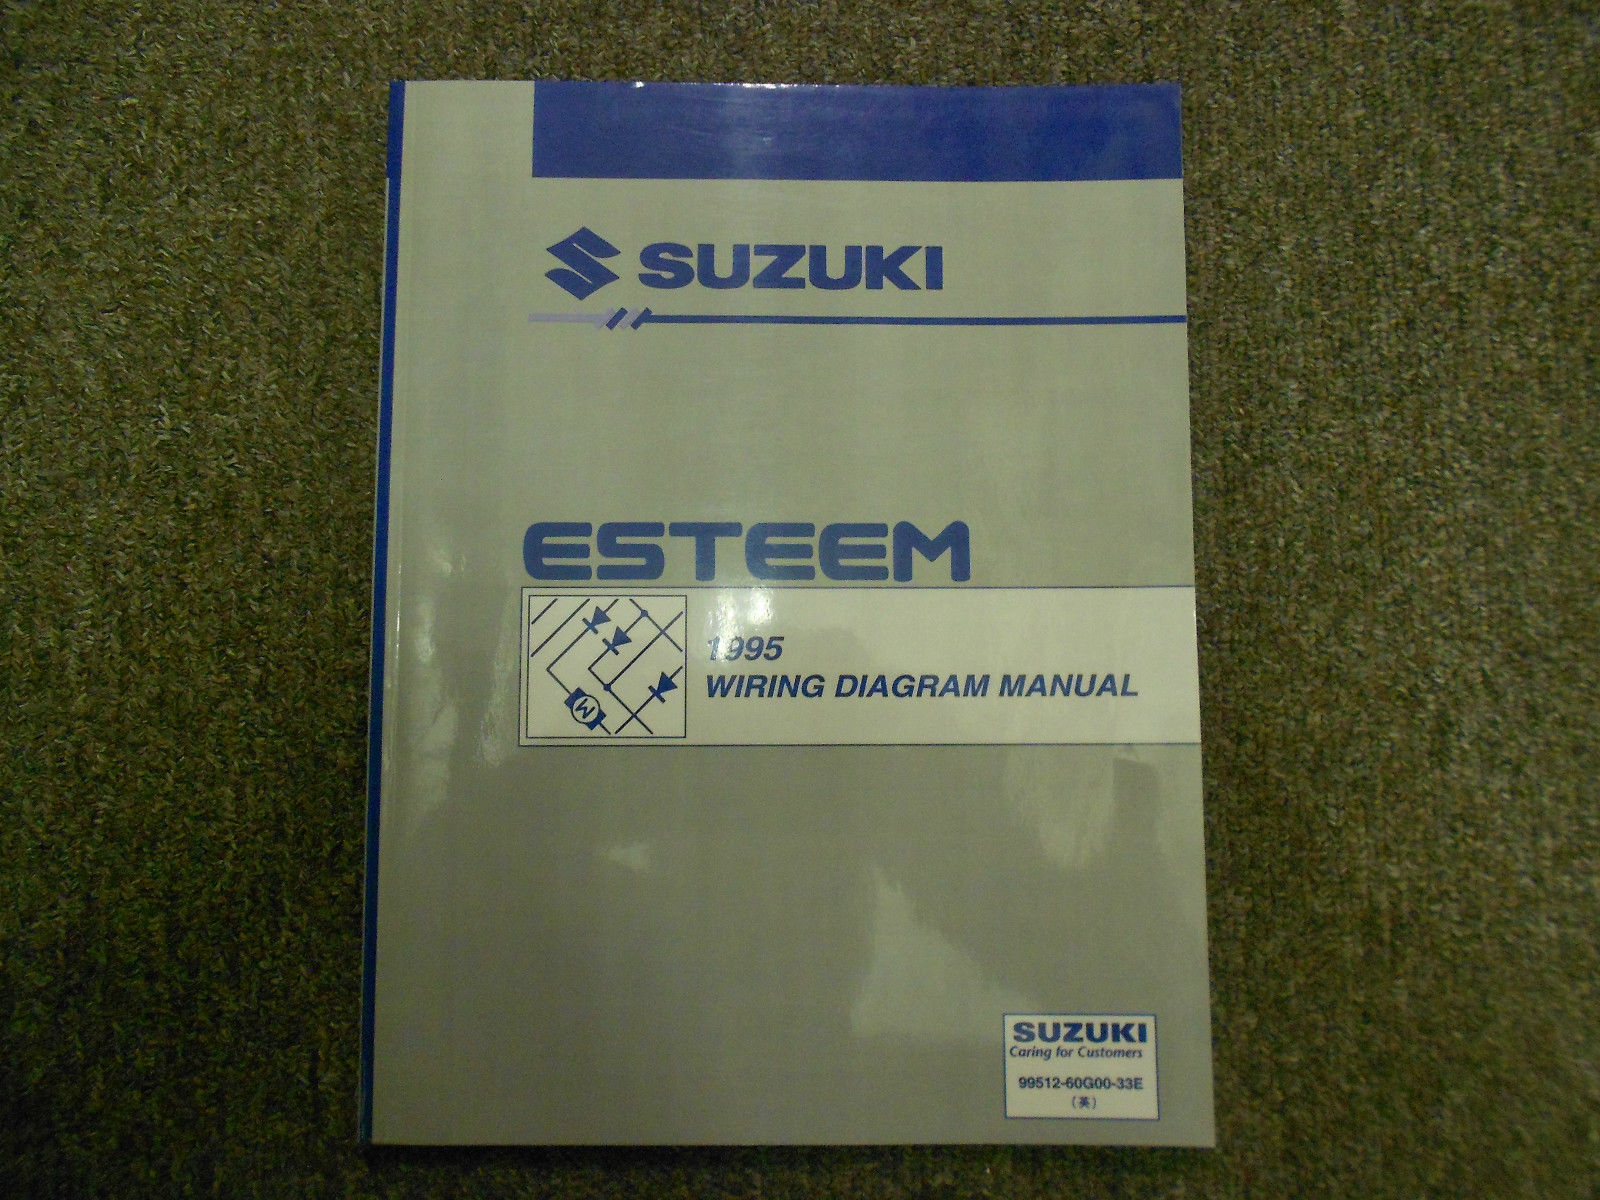 hight resolution of 1995 suzuki esteem wiring diagram shop and 50 similar items kgrhquoko4fgt1mu kdbrn6 t5 g 60 57